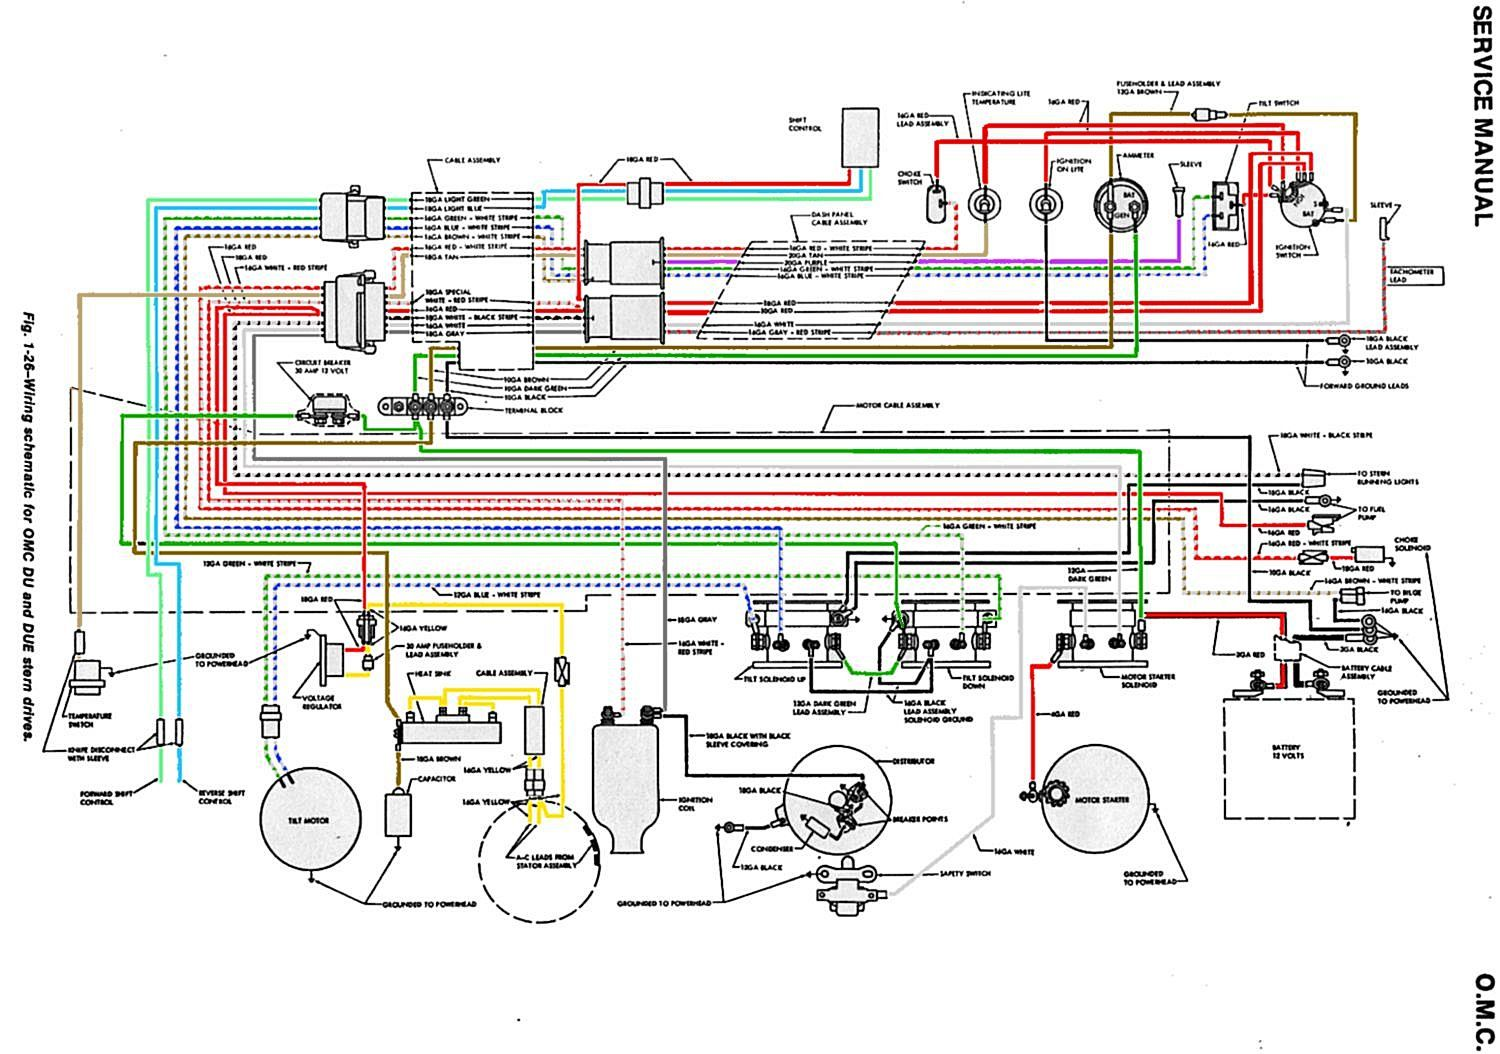 65 68_OMC_Wiring_Schematic omc boat technical info sailboat wiring diagram at n-0.co